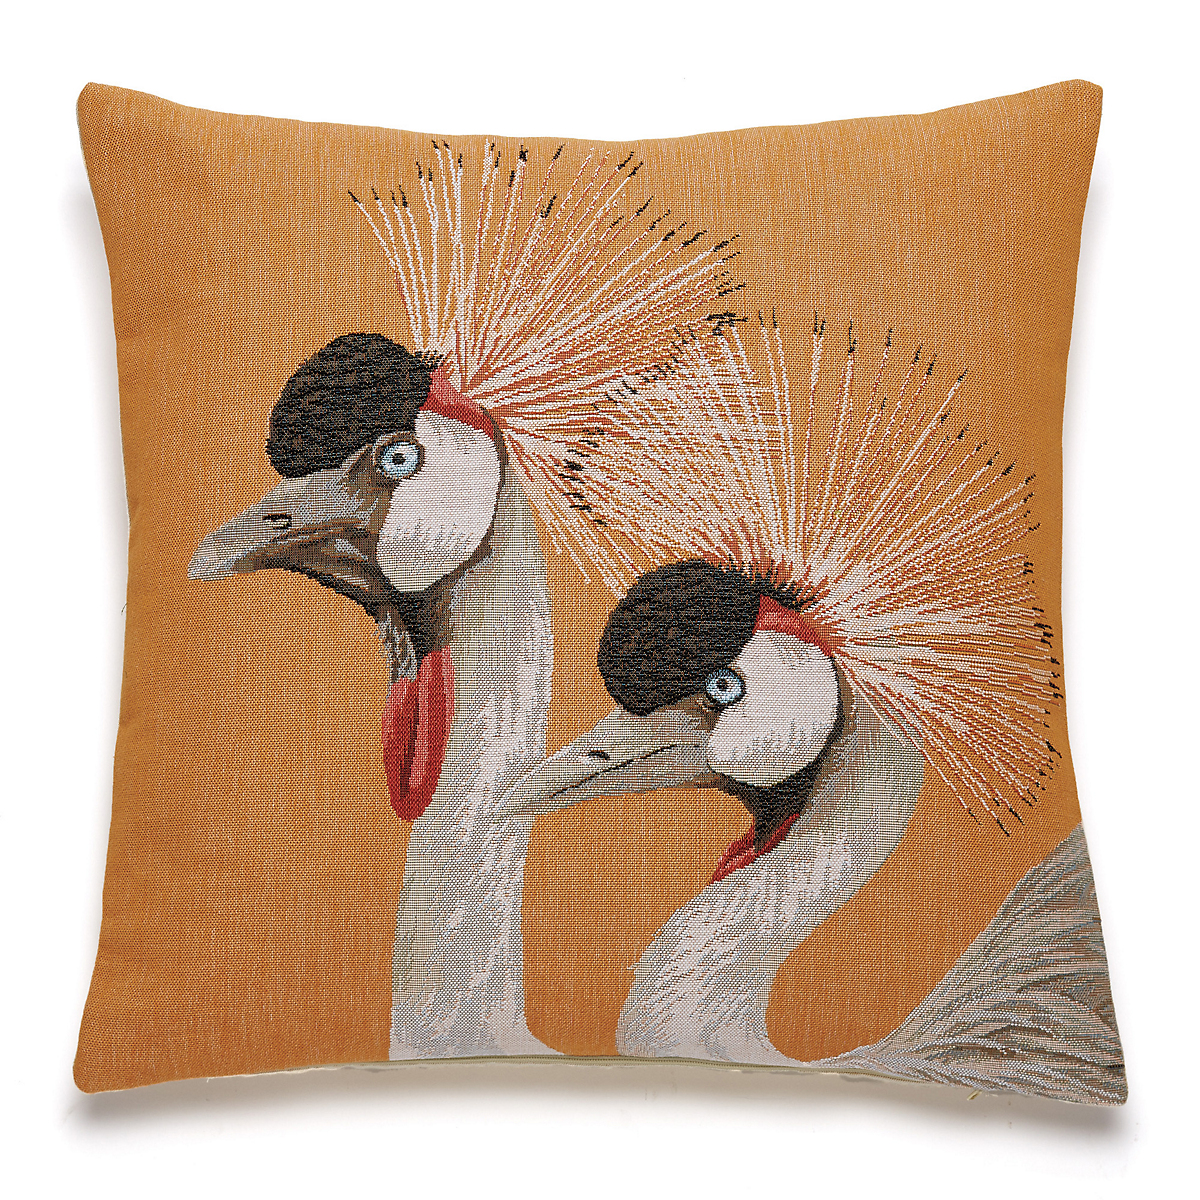 Avian Tapestry Pillows